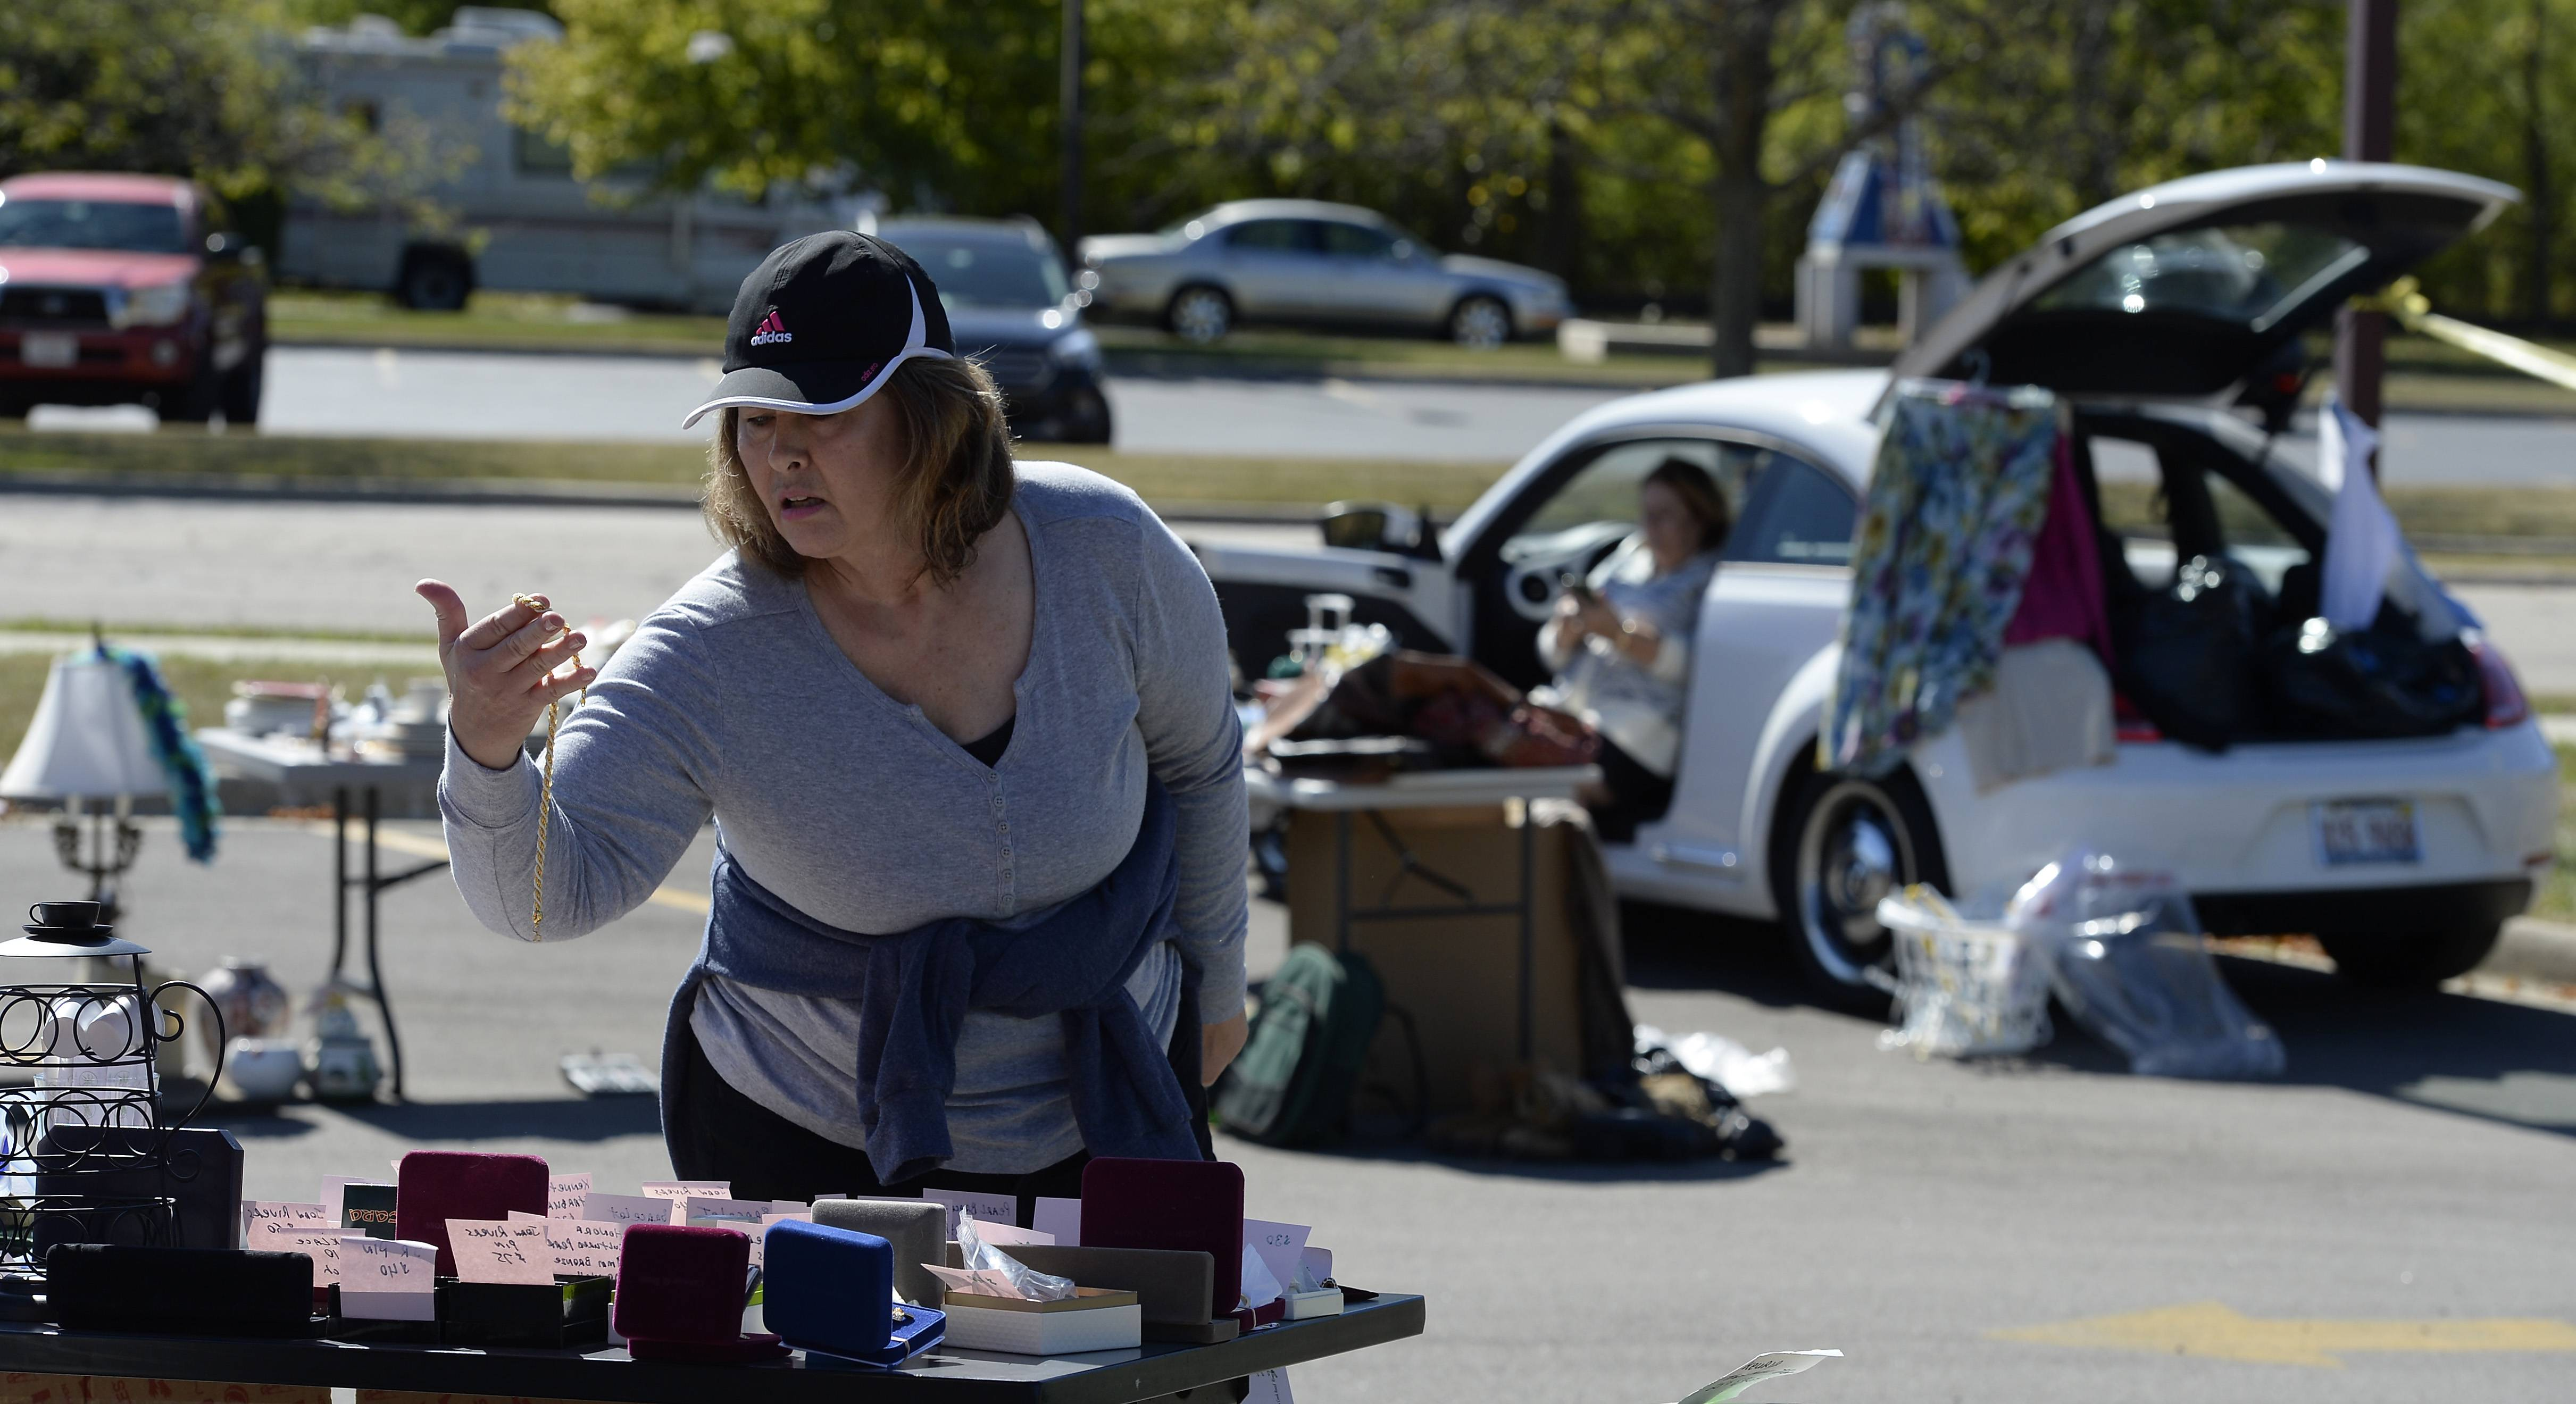 Members of The Ela Township 55 Plus group set up shop at the second Annual Trunk Sale Saturday. Participants sell items from their cars and trunks to help raise money for Team Ela Walking the Journey to End Alzheimer's.